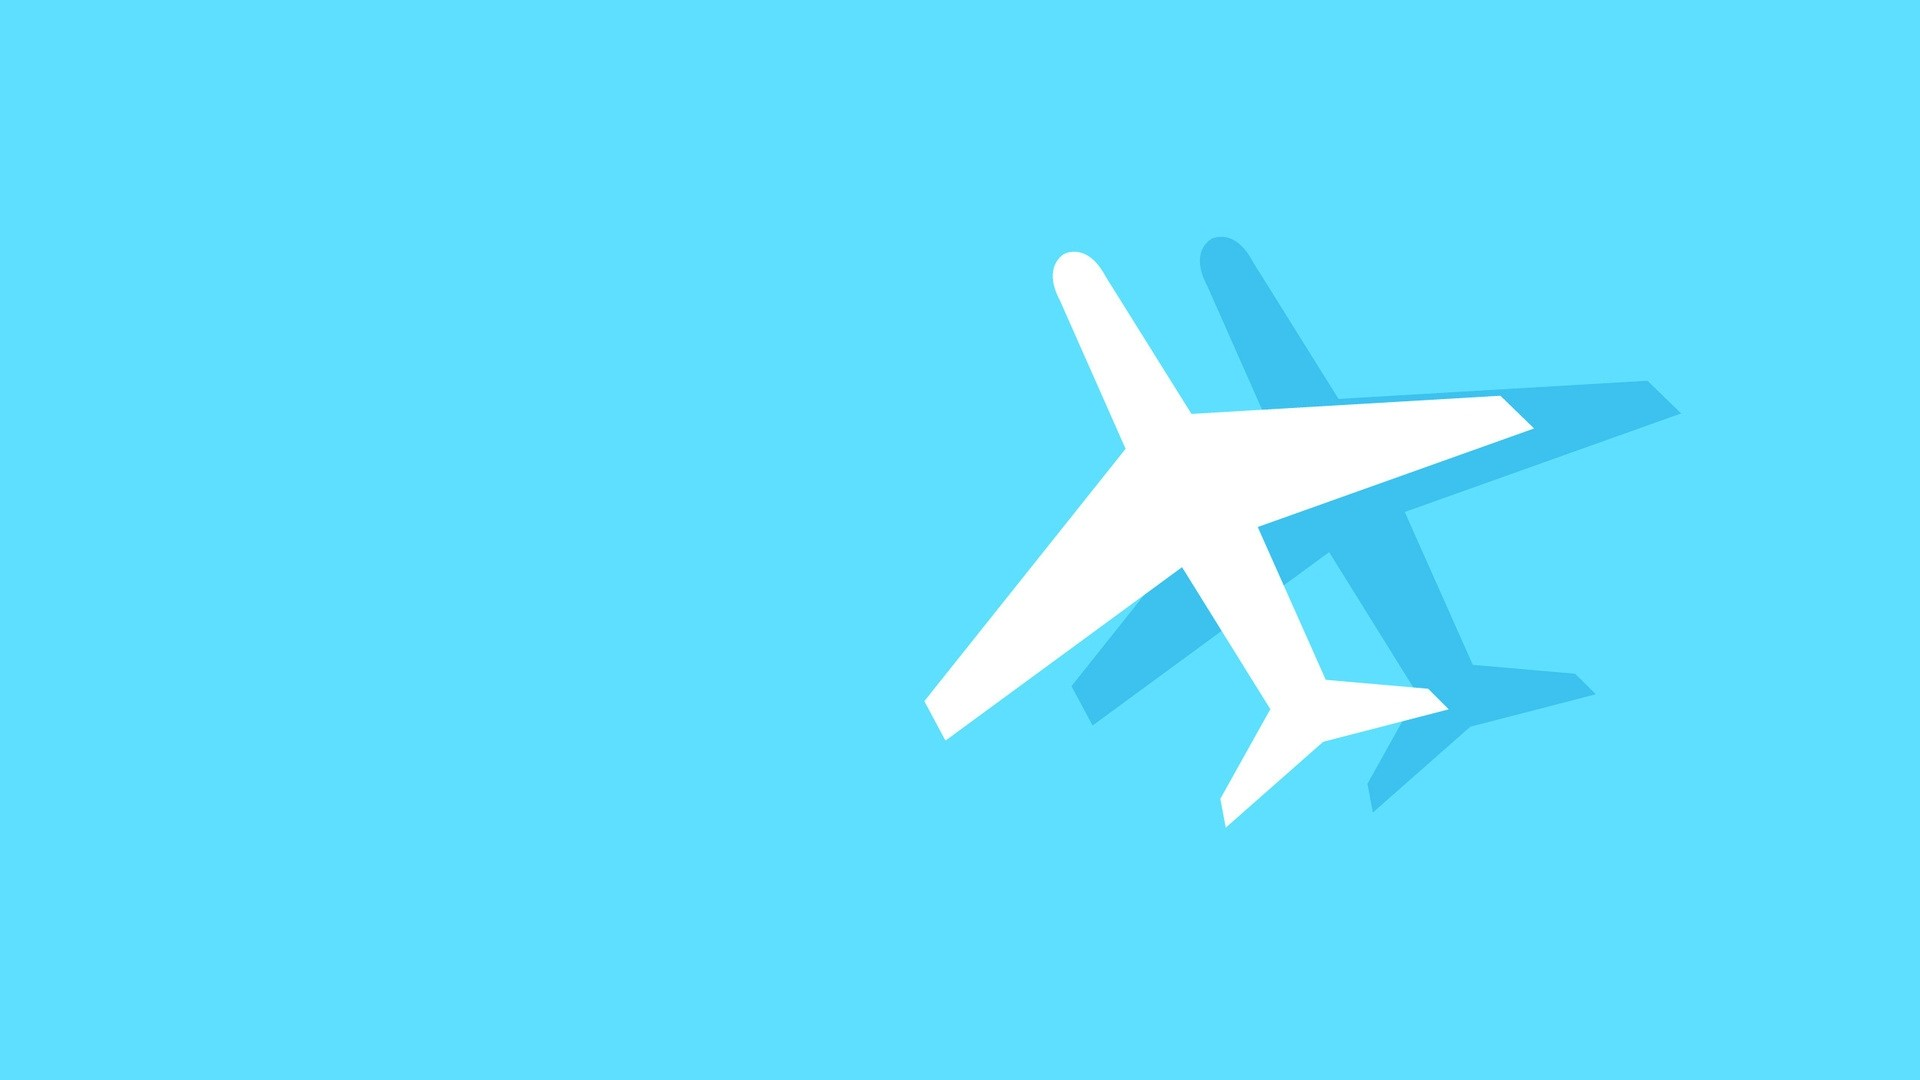 Airplane Minimalist wallpaper photo hd